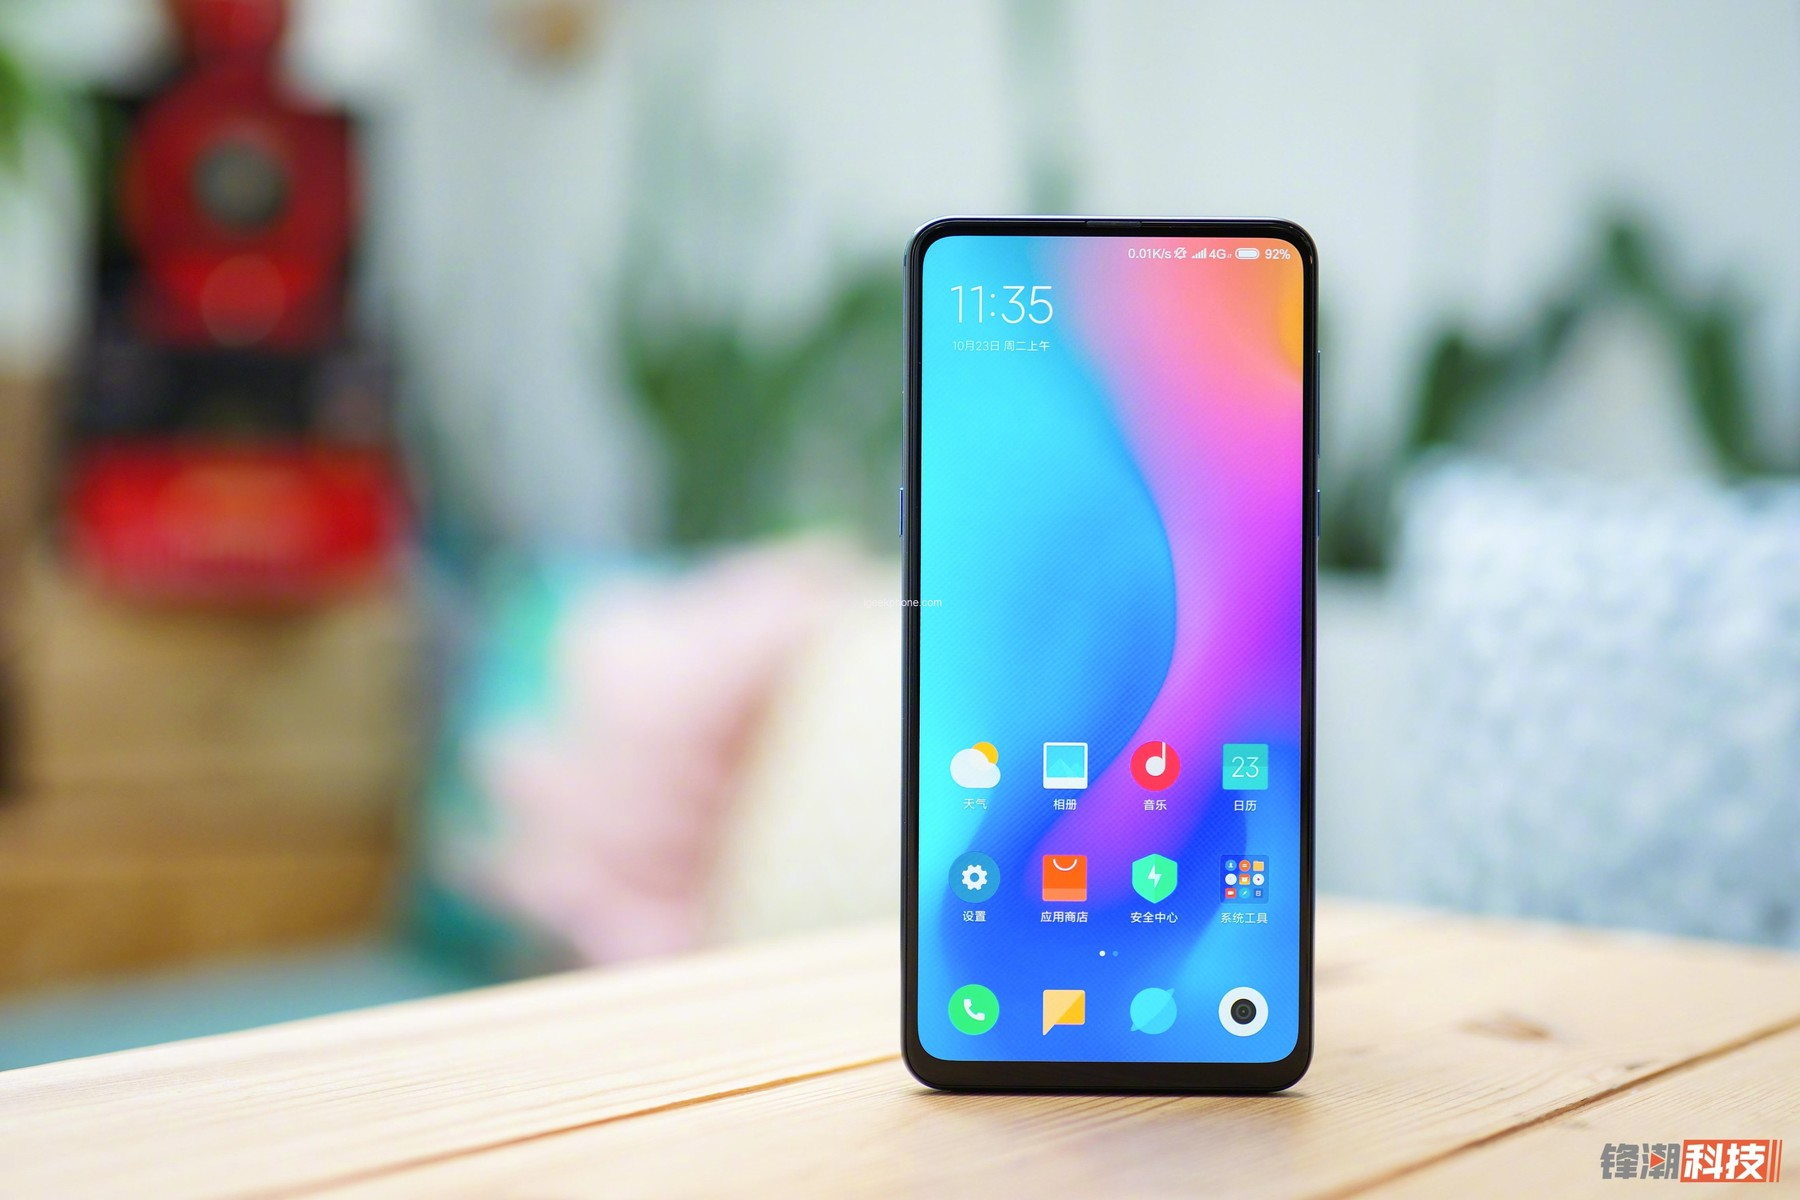 The Xiaomi Mi 9 Could Be The First Phone Powered By The Qualcomm Snapdragon 8150